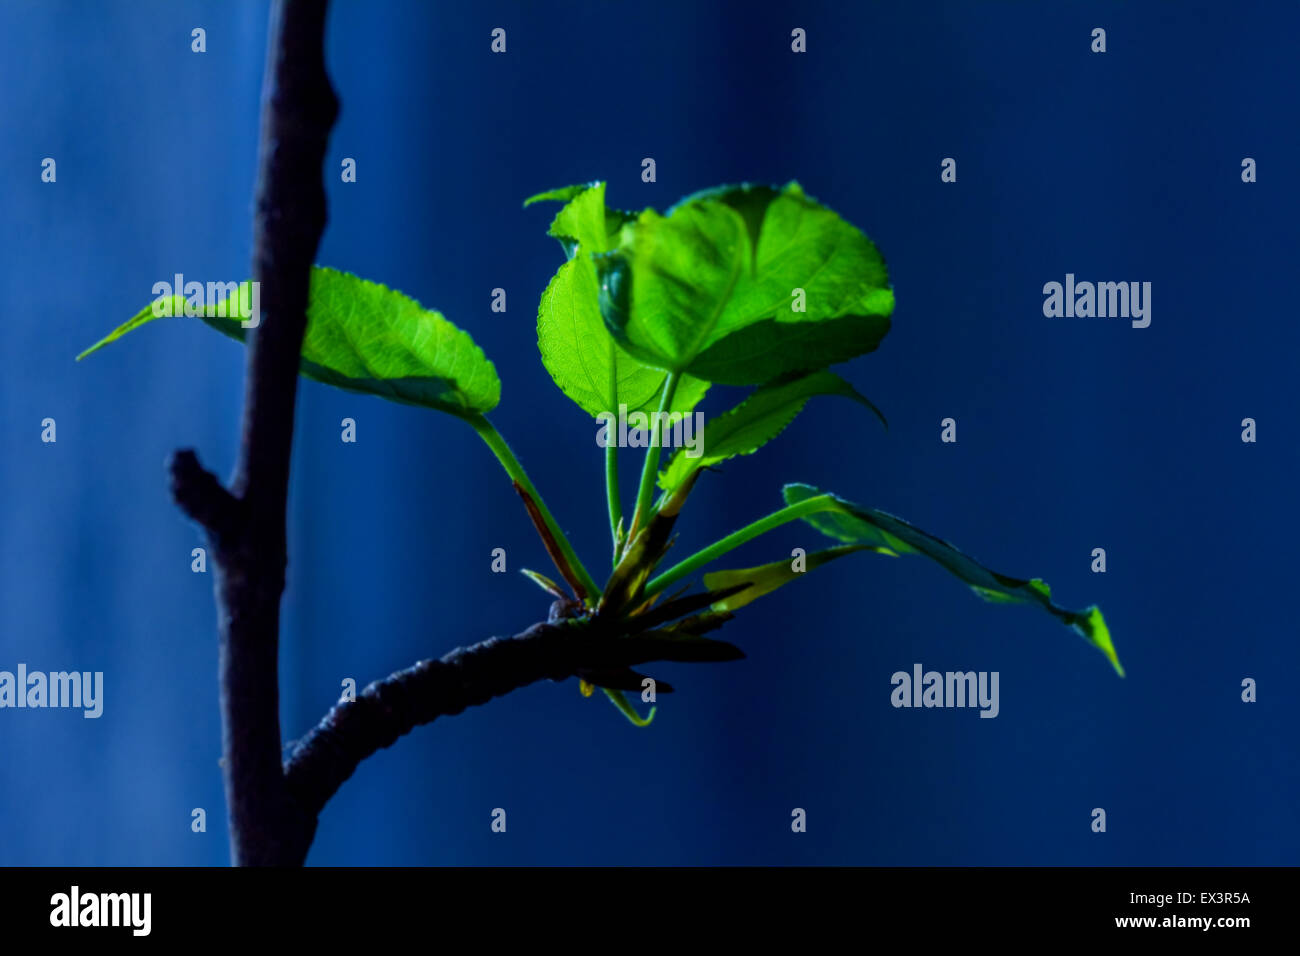 Young green leaves on branch in room - Stock Image